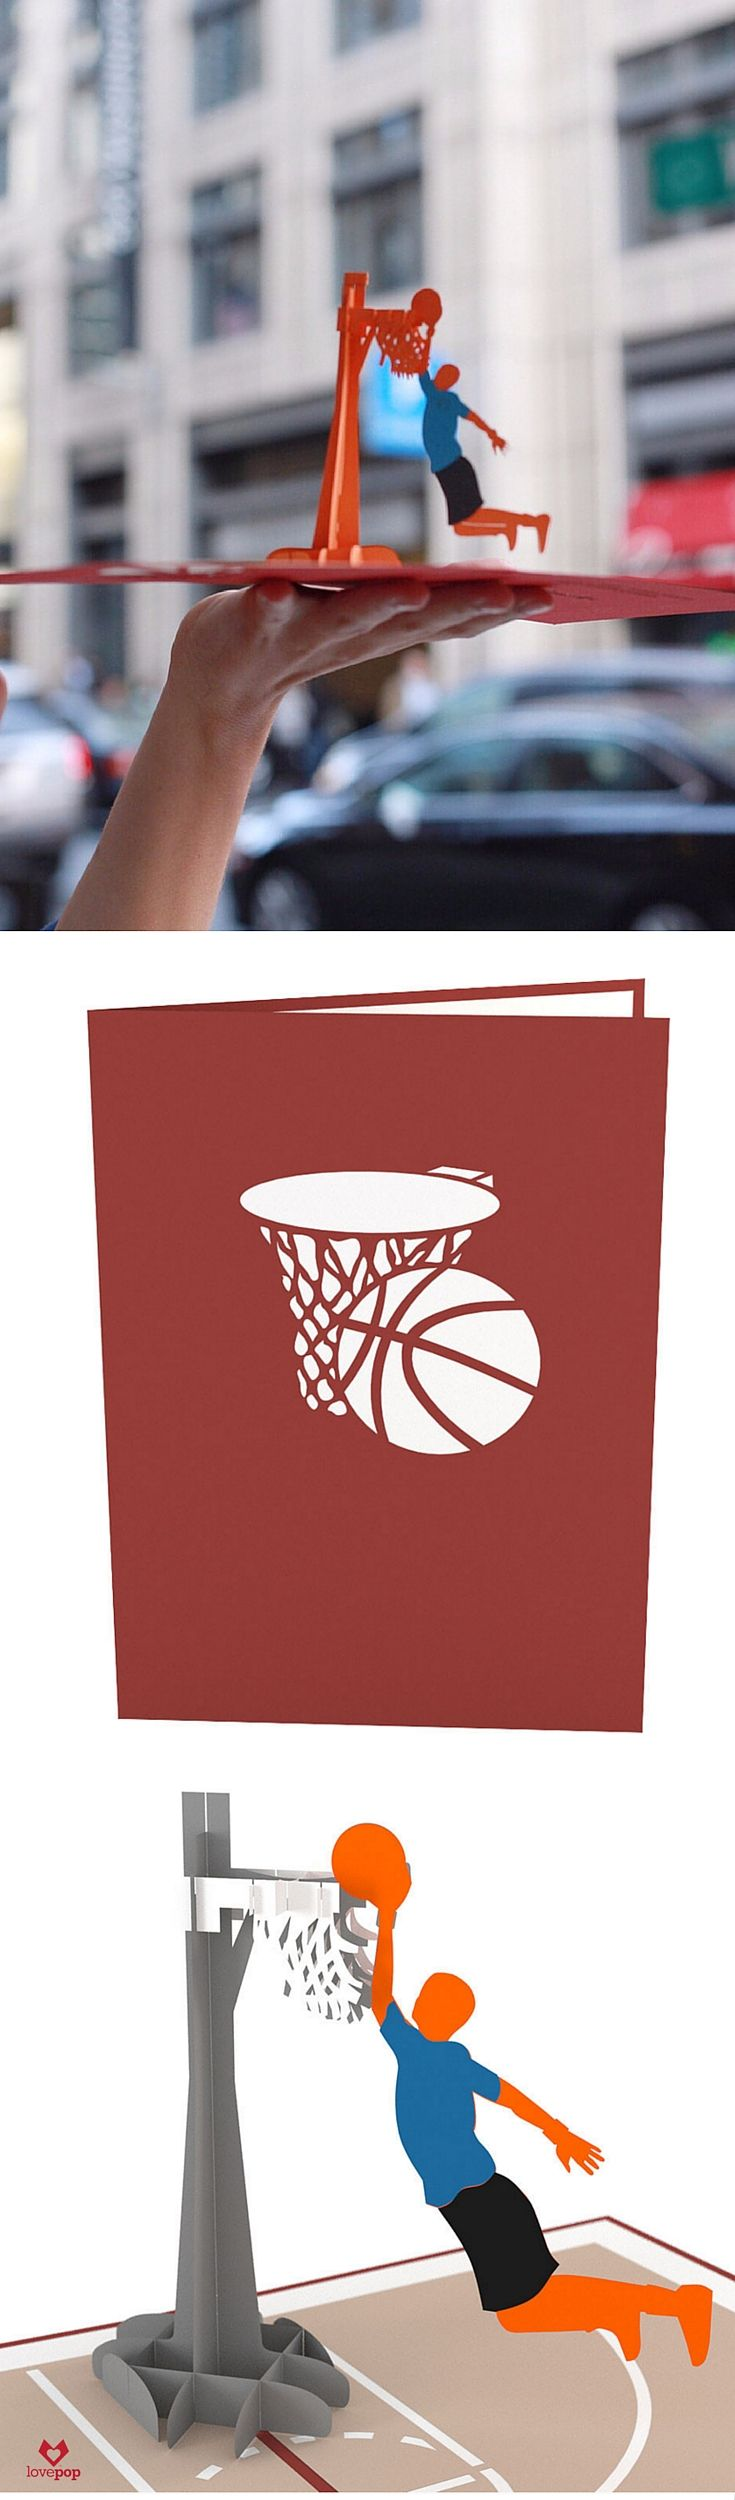 Slam Dunk! Gift this 3D pop up card to your favorite bball fan for their birthday or any occasion. #basketball #swoosh